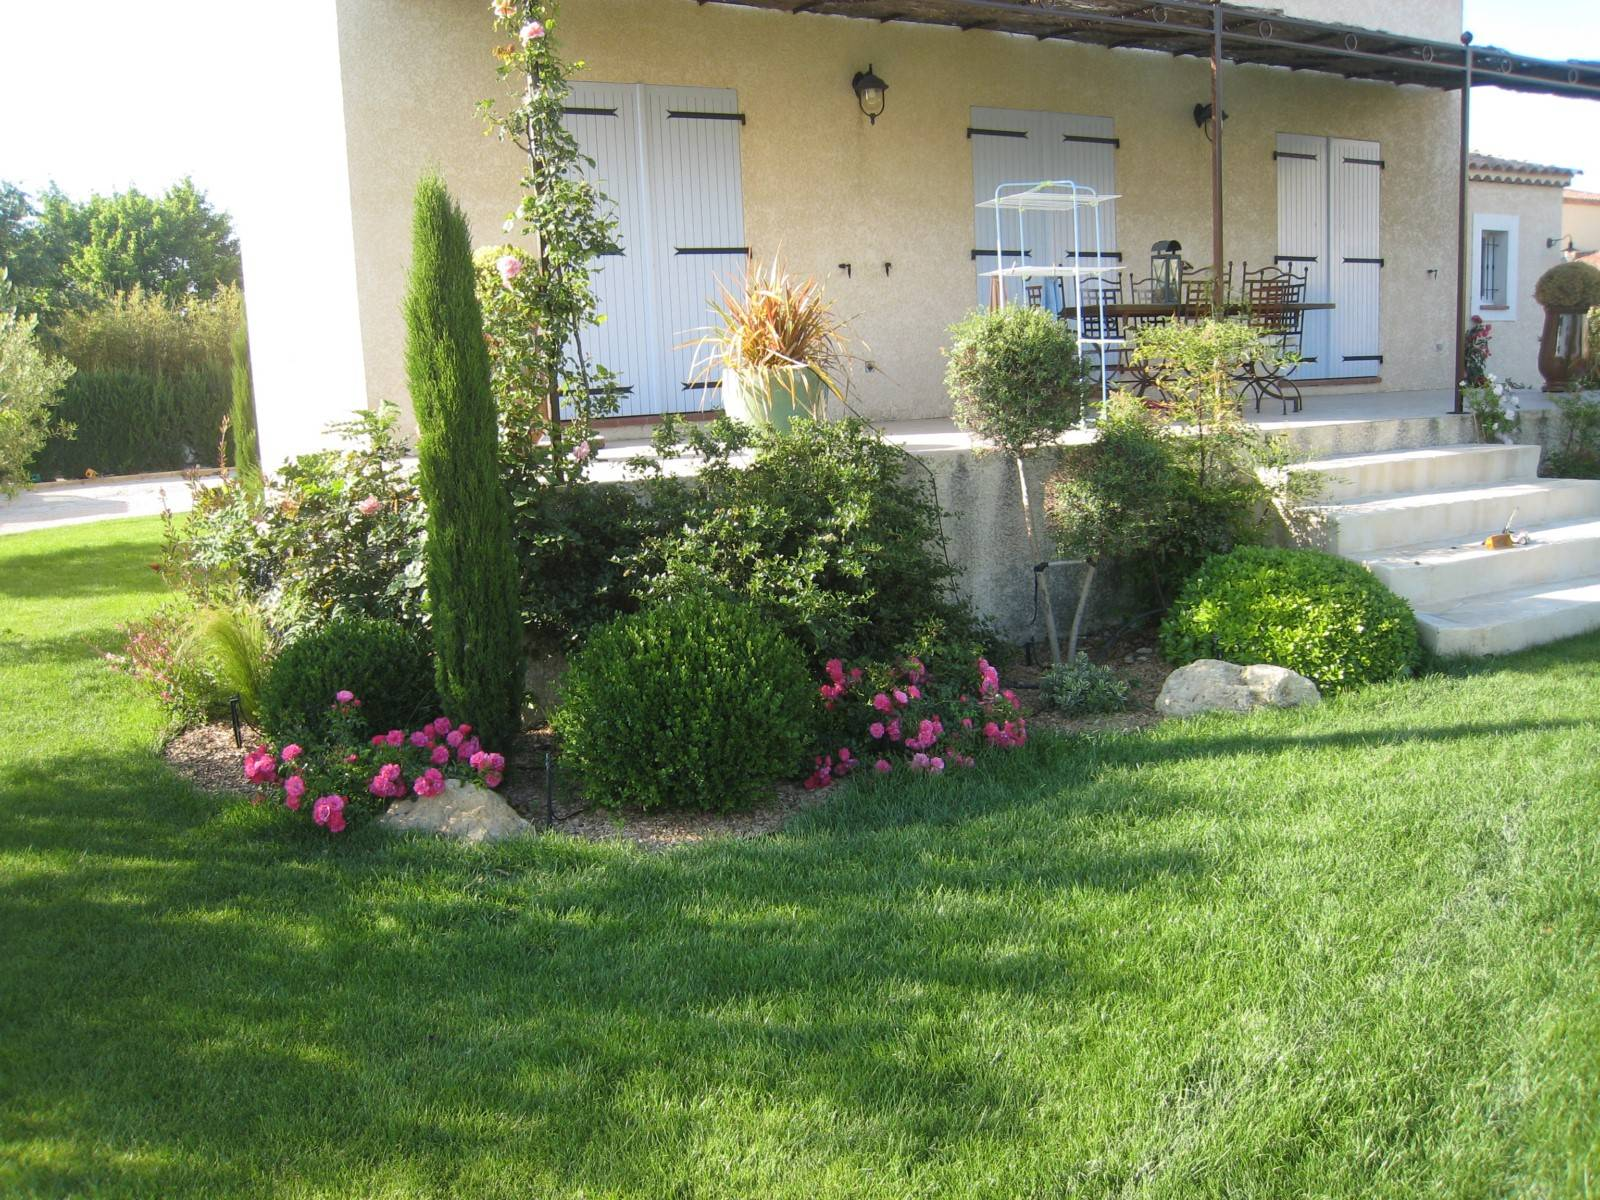 Cr ation d 39 un jardin proven al berre l 39 etang 13130 for Creation jardin provencal